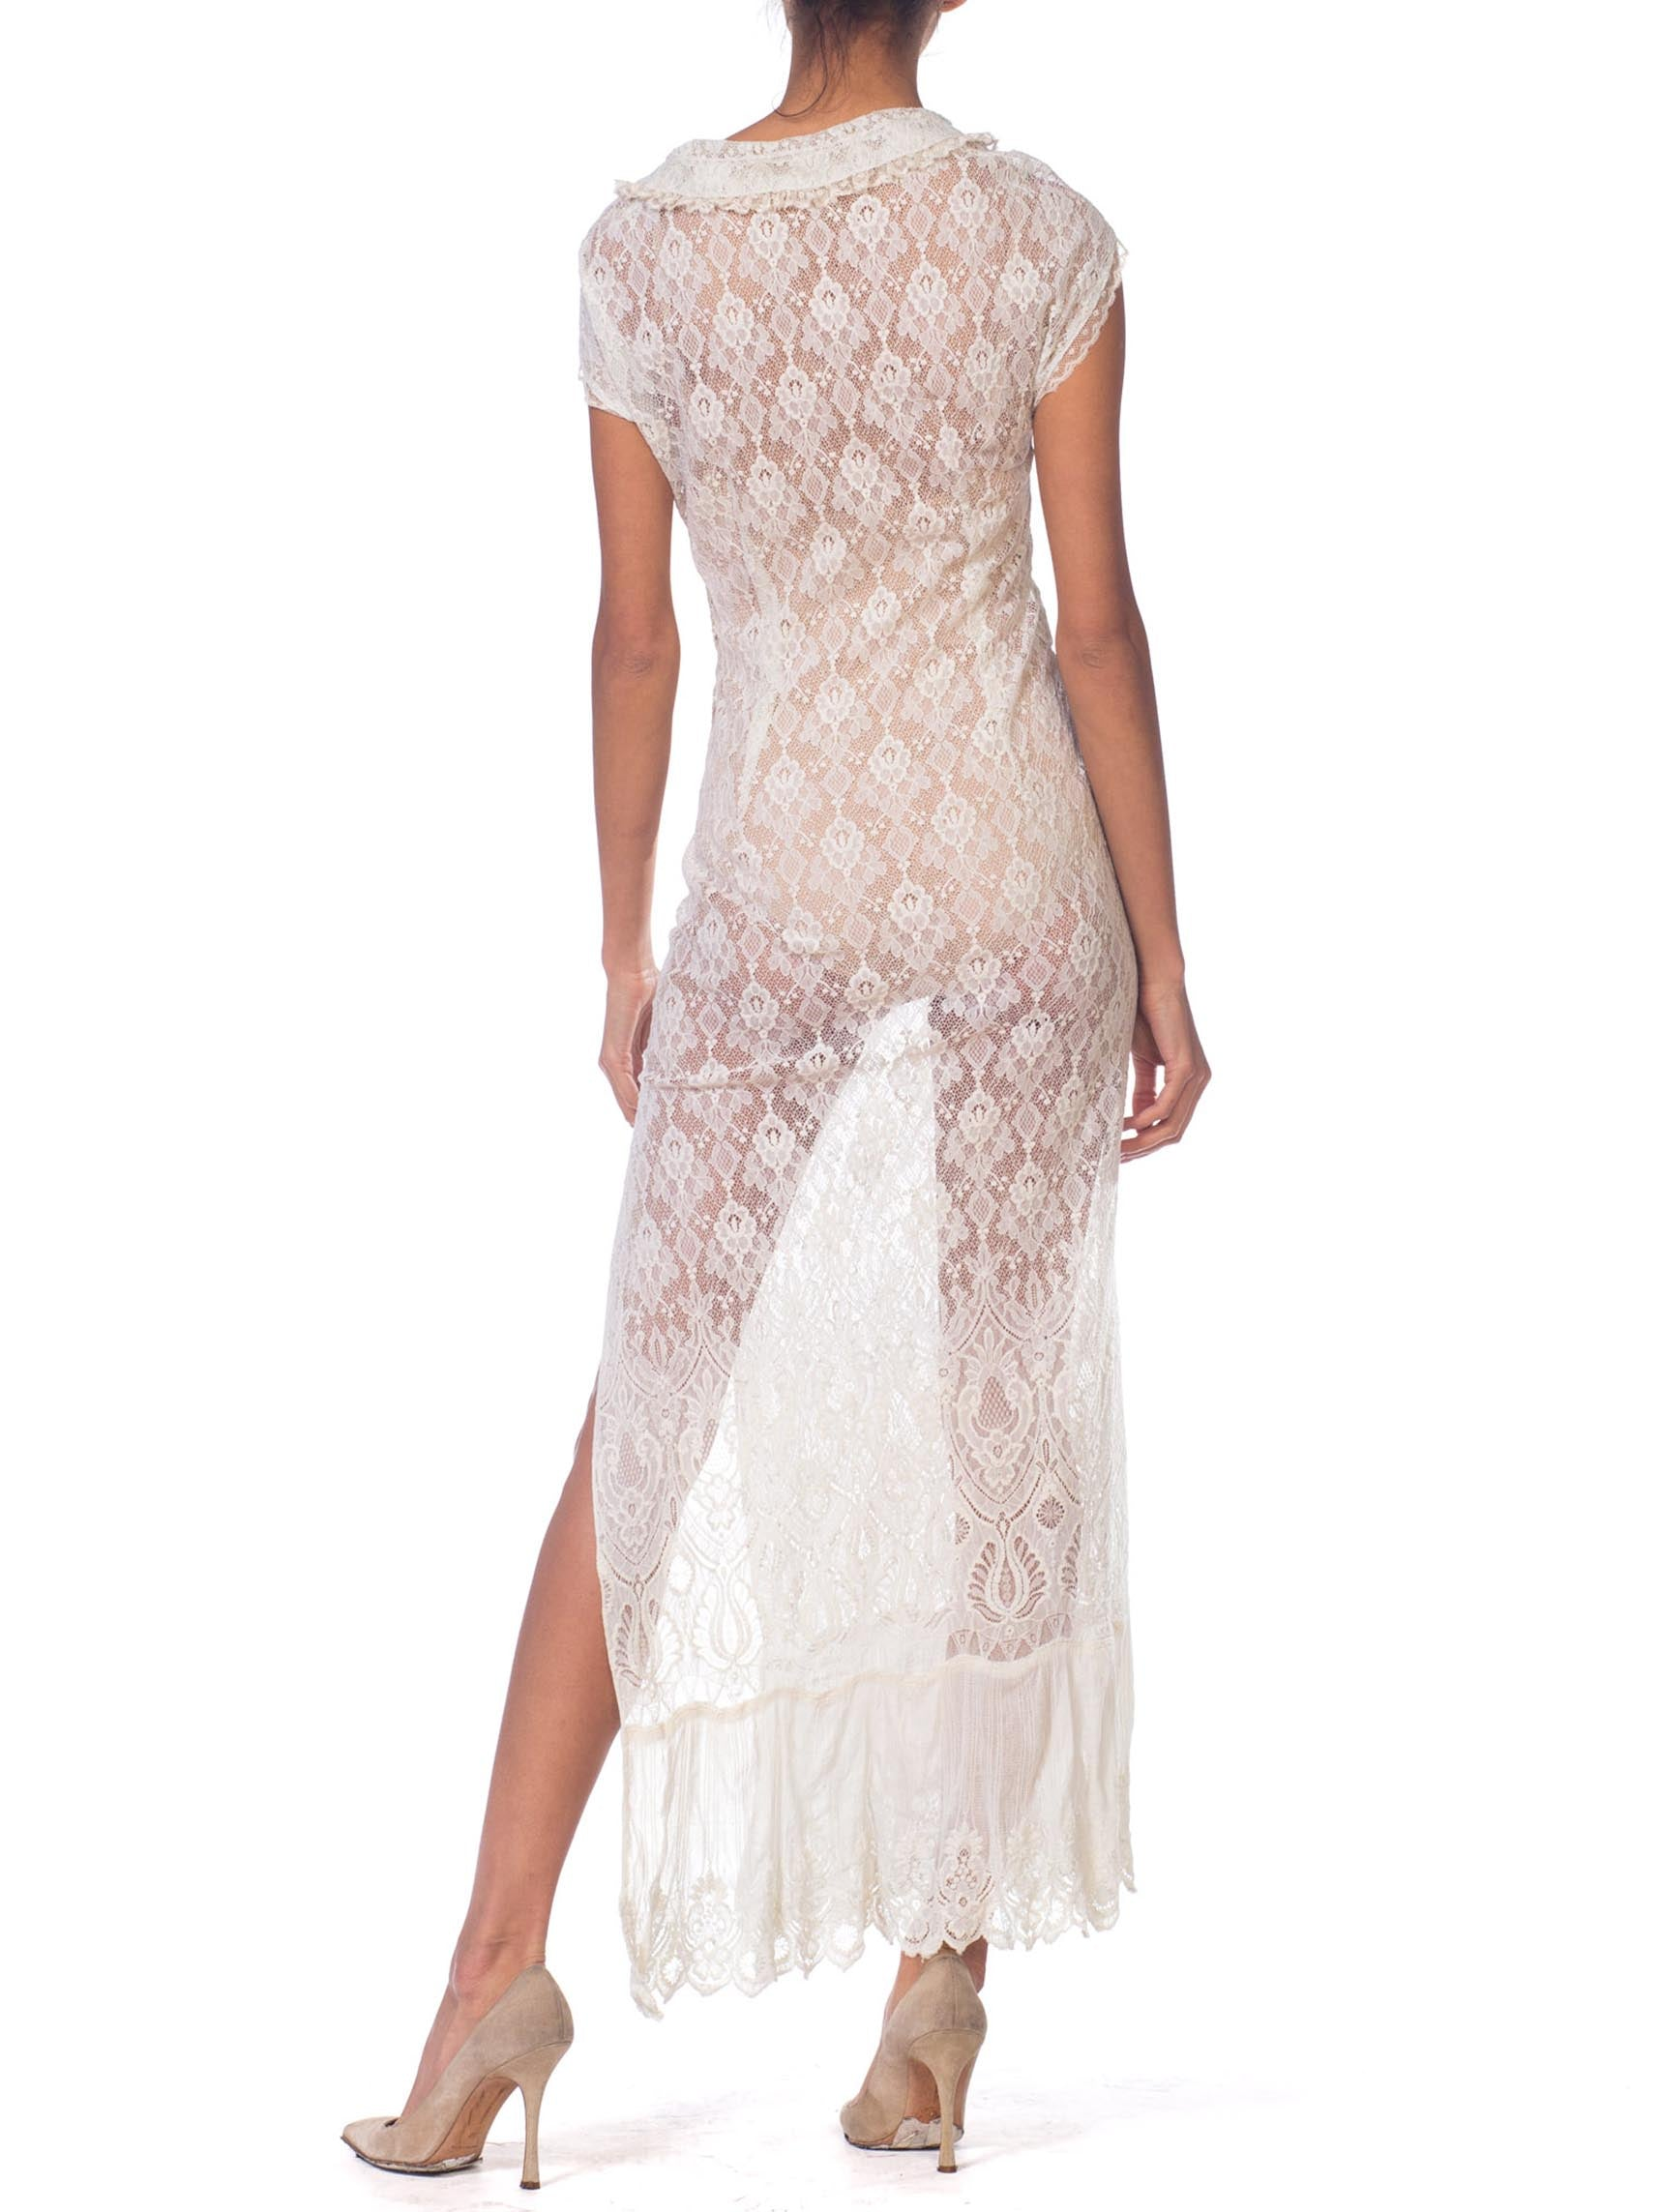 Morphew Collection White Maxi Resort Dress Made From Edwardian & 1930'S Lace